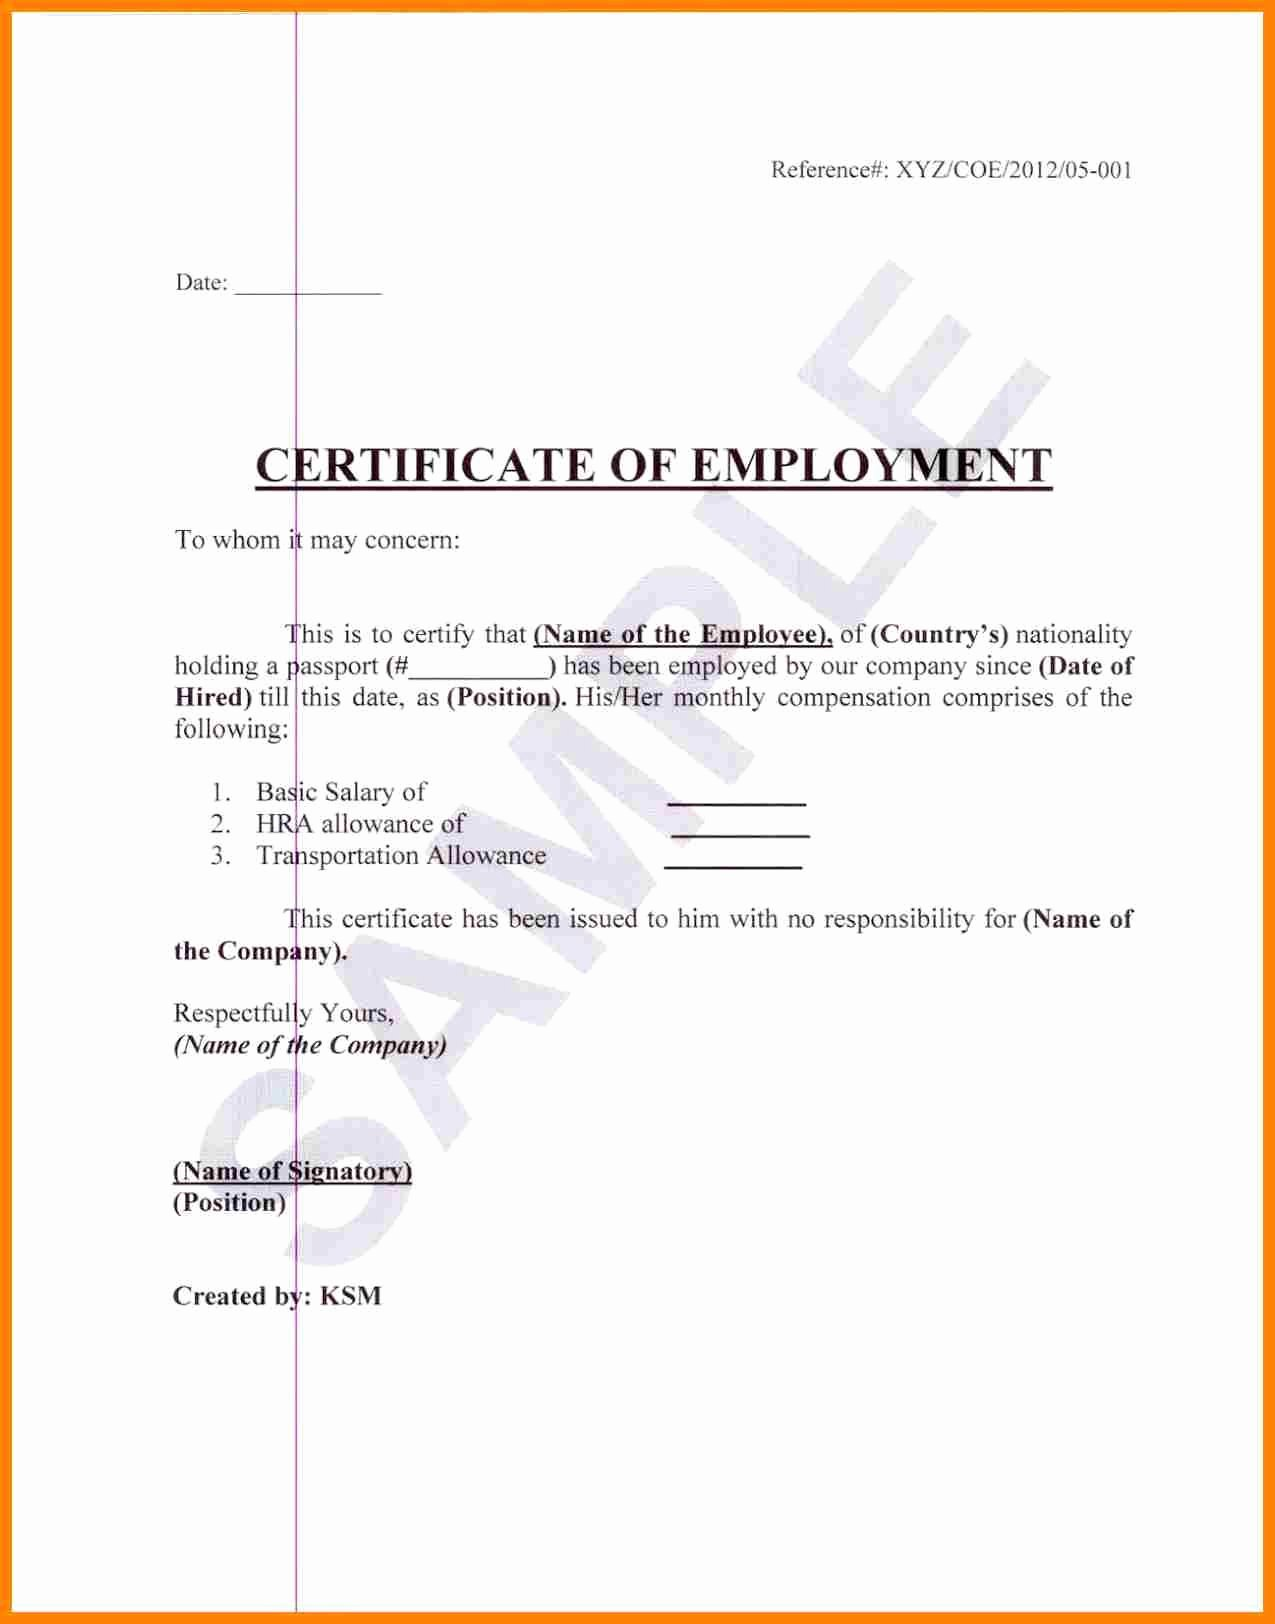 Sample Of Certificate Of Employment Fresh Sample Certification Employment Certificate Tugon Med